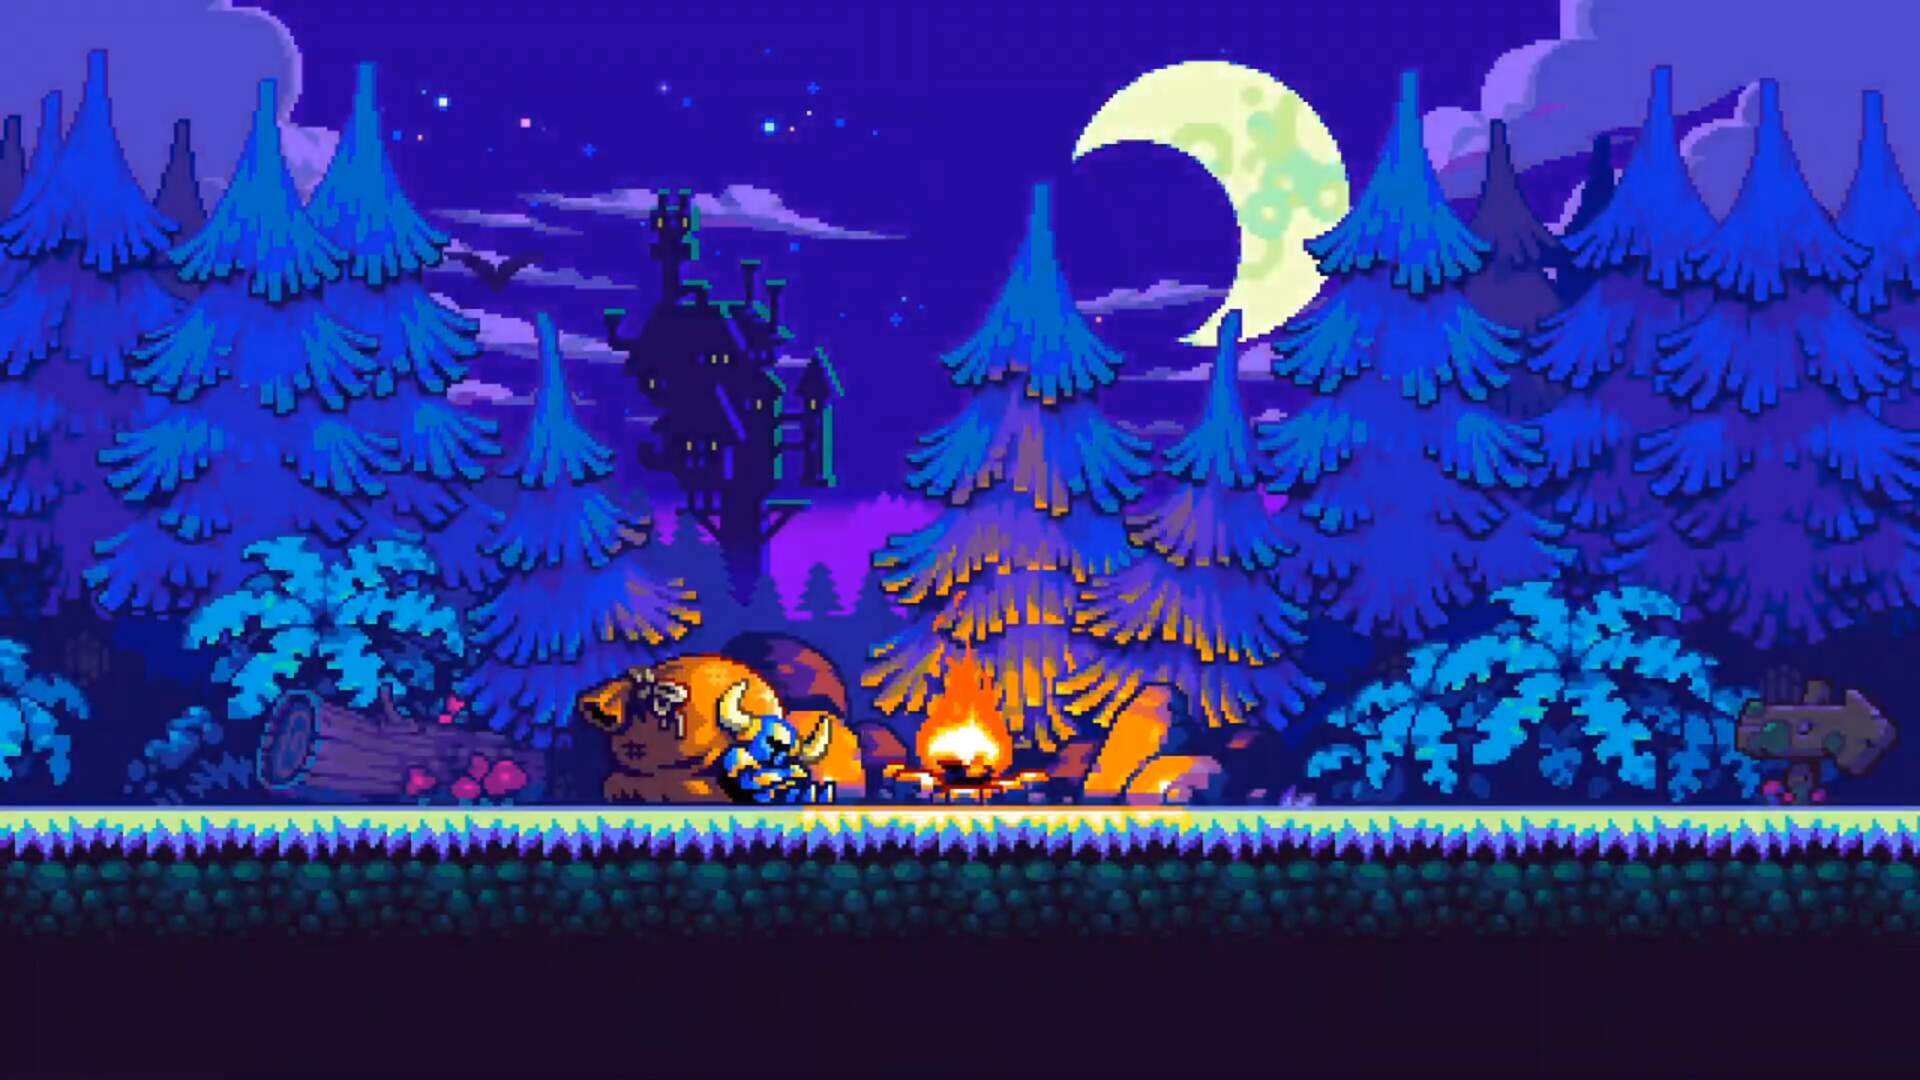 A New Shovel Knight Game is Coming, and It's All About Digging